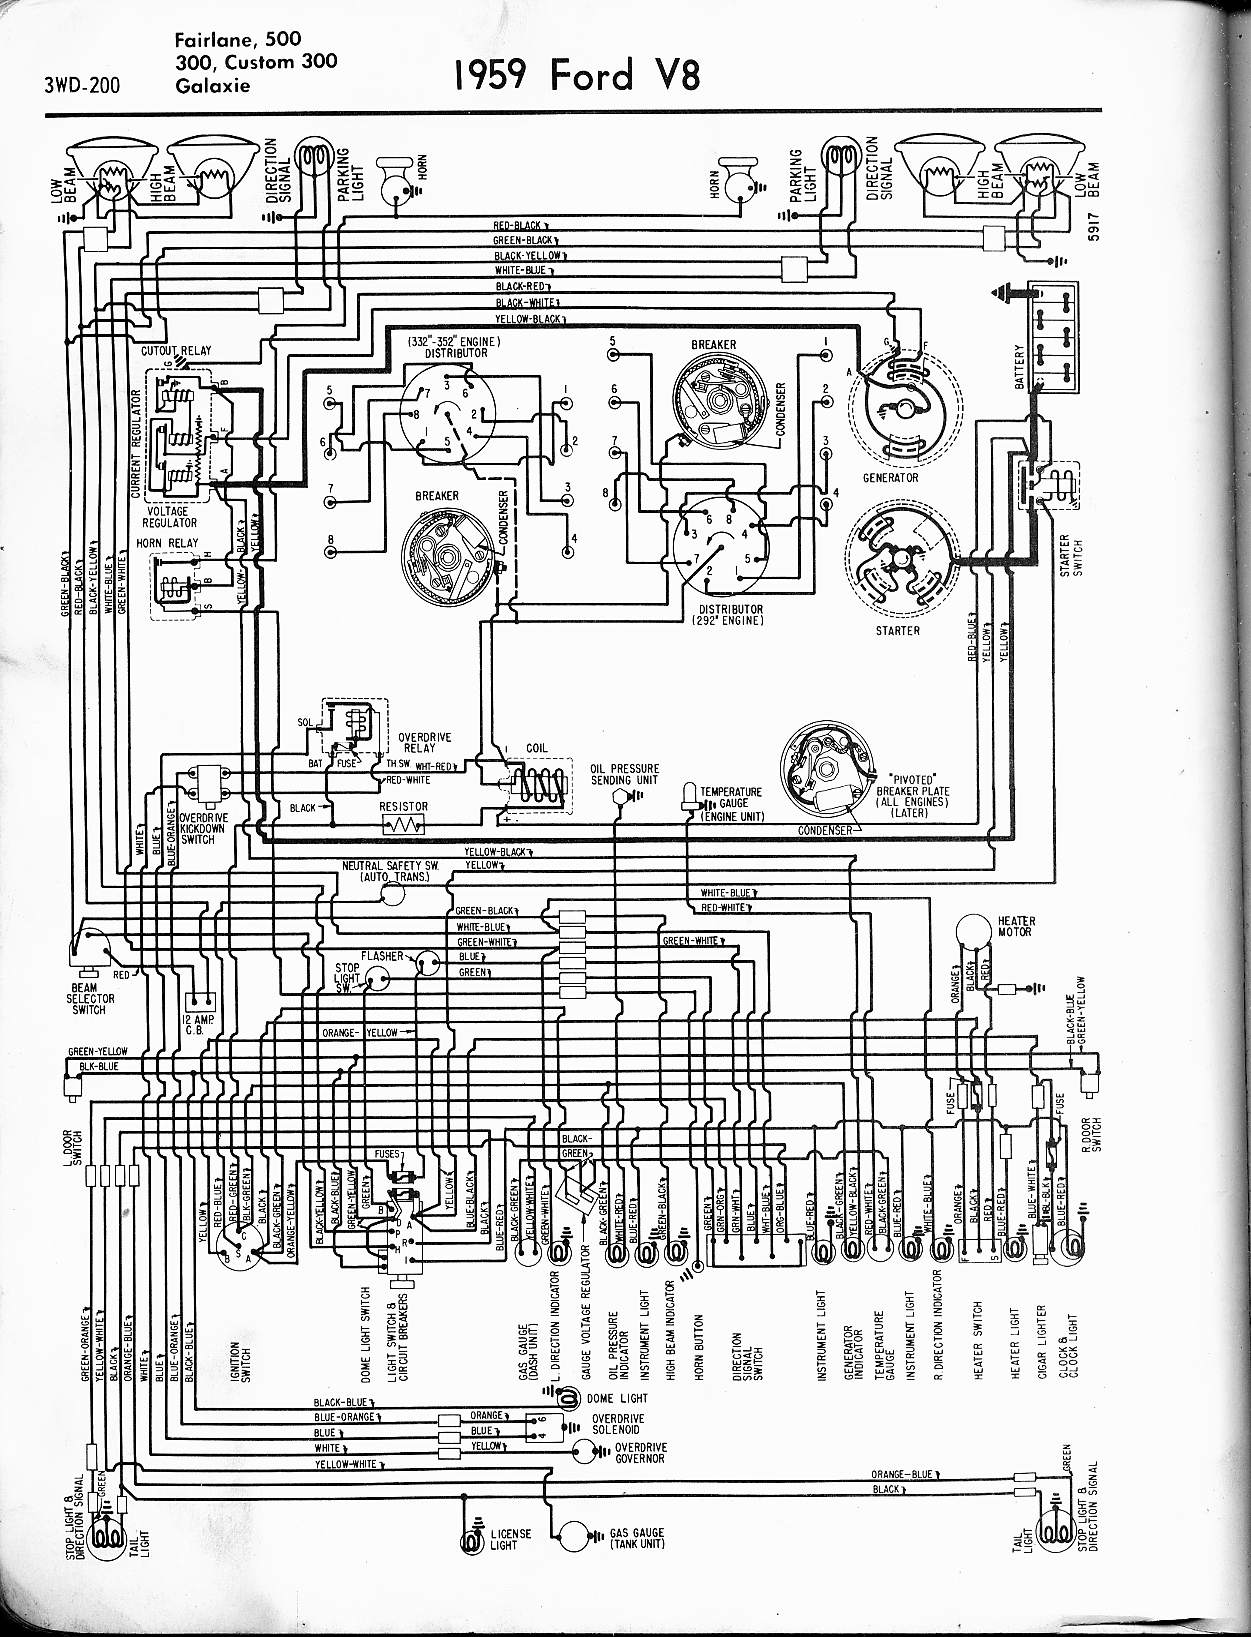 MWire5765 200 57 65 ford wiring diagrams f100 wiring diagram at virtualis.co